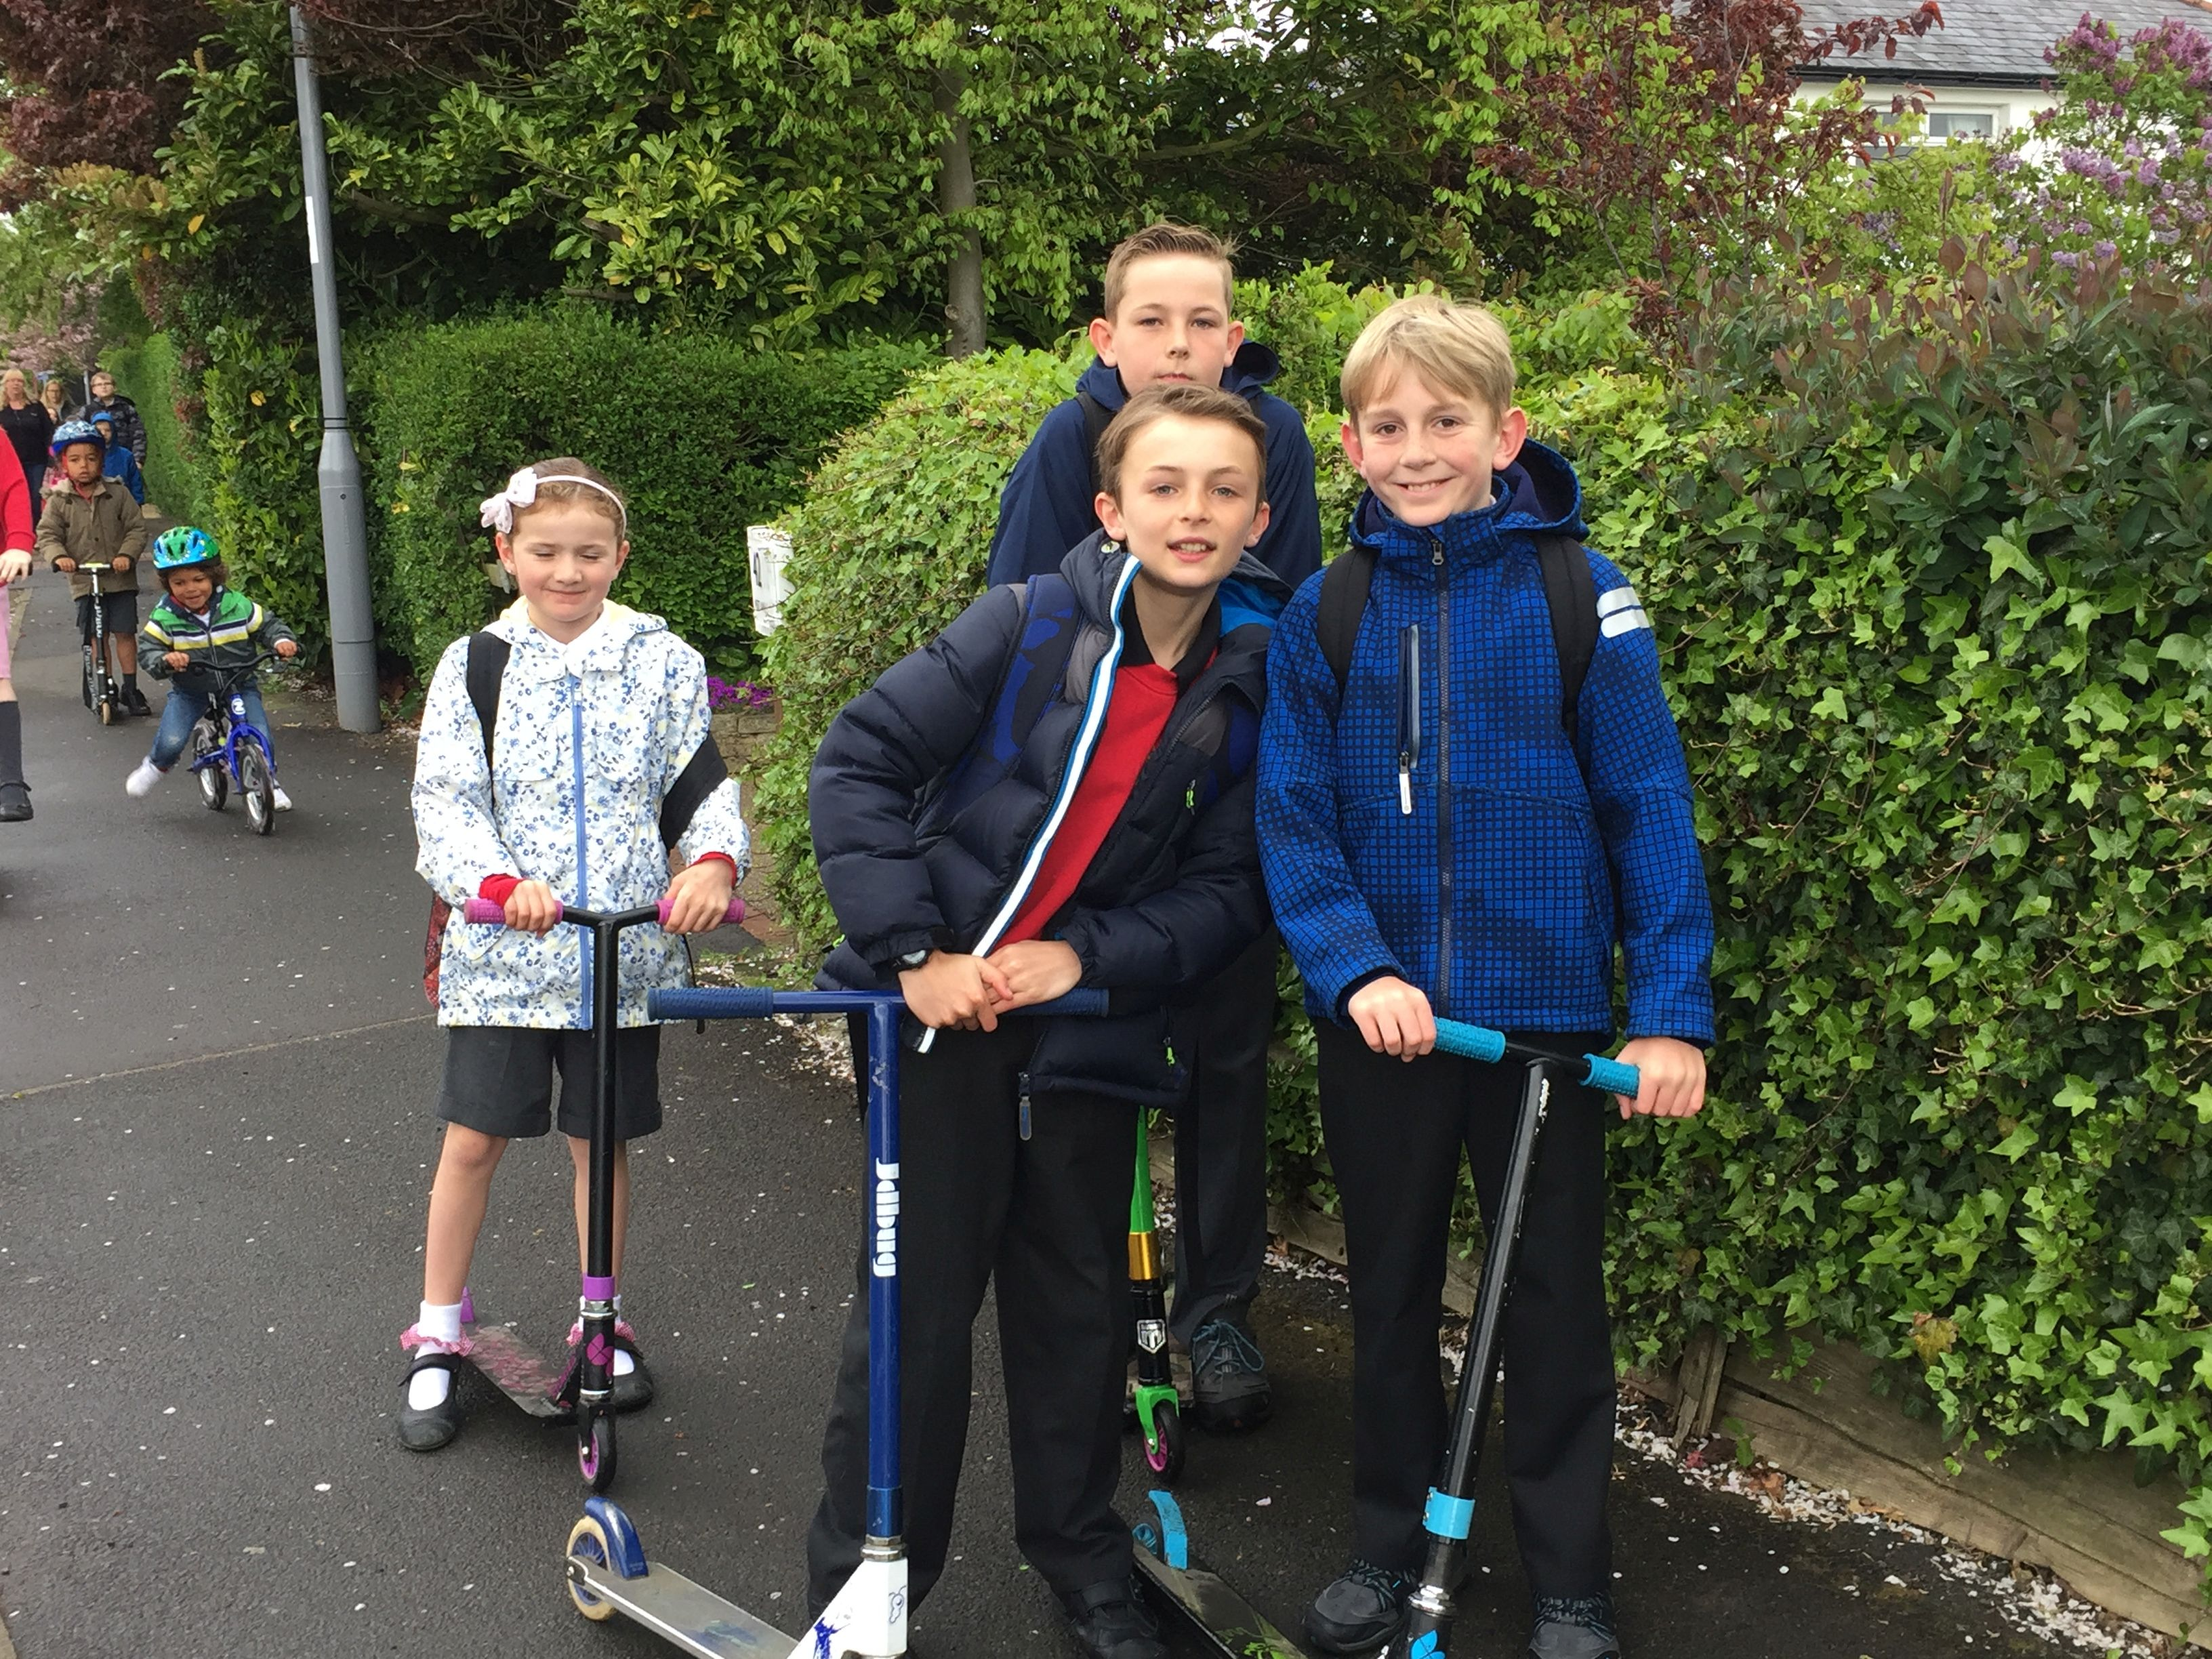 Pupils enjoying scooting to school